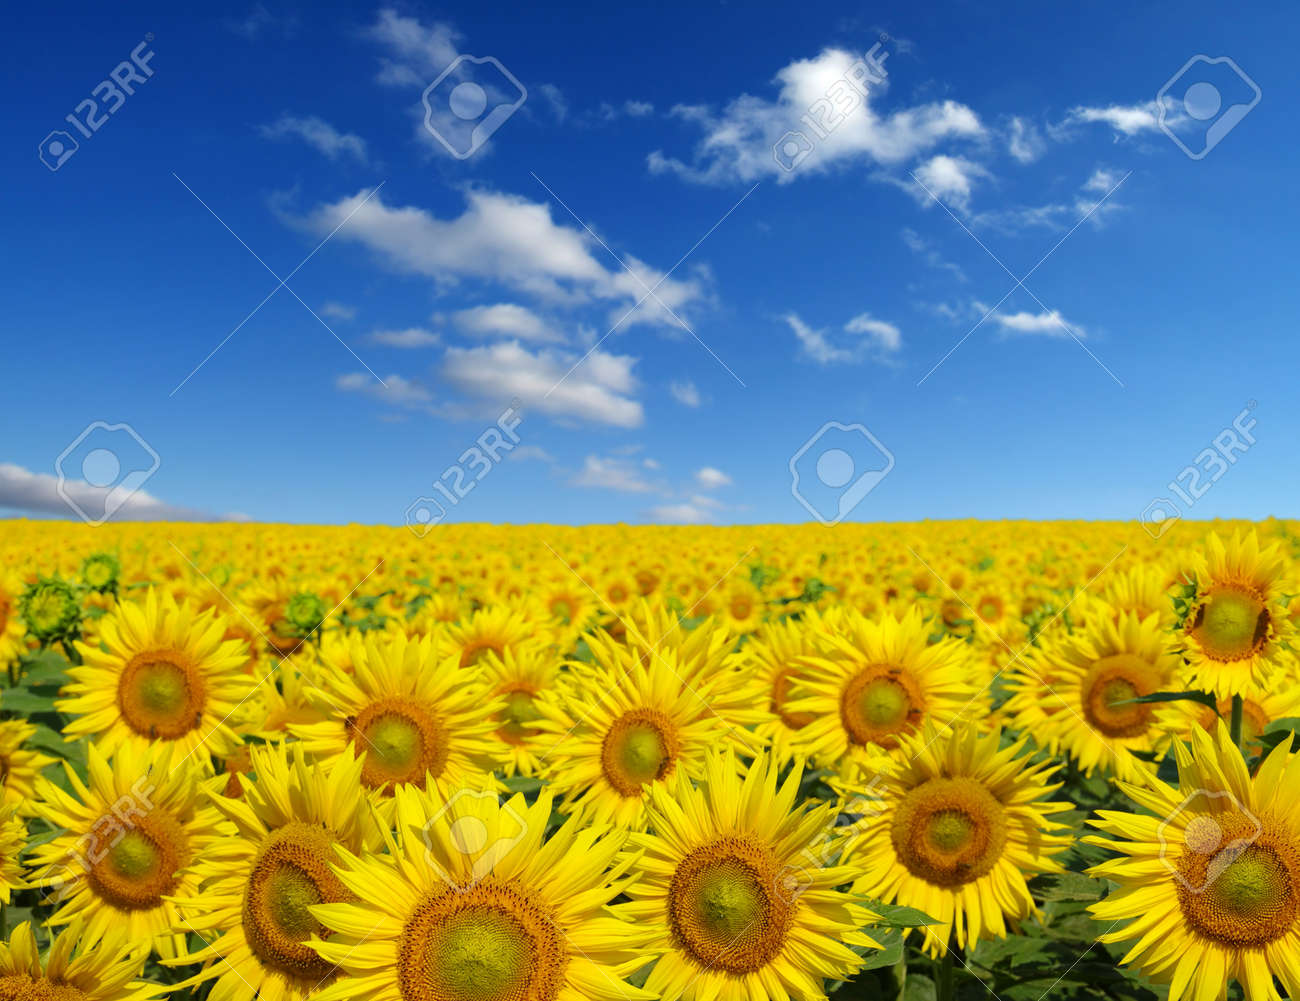 sunflowers field on sky background Banque d'images - 38899312